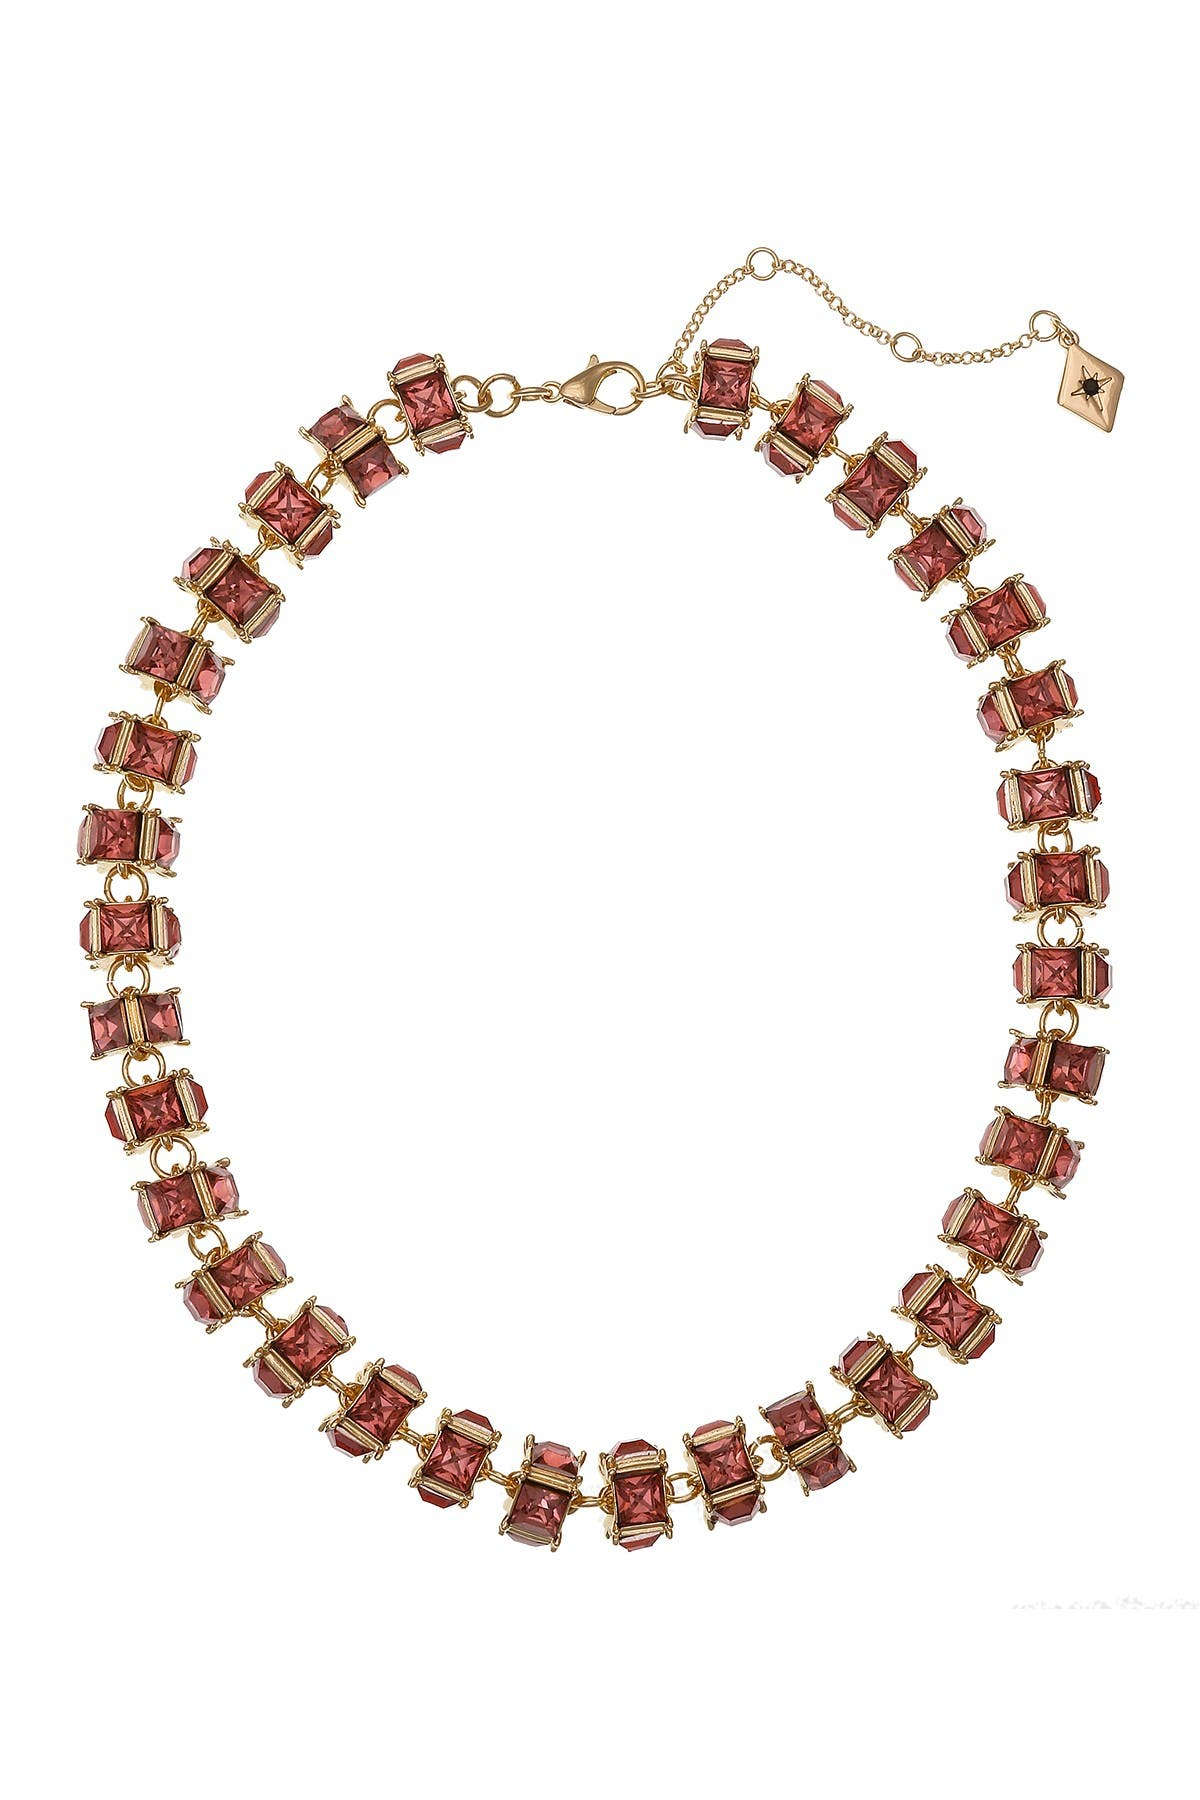 Image of Christian Siriano New York Pink Glass Crystal Statement Collar Necklace